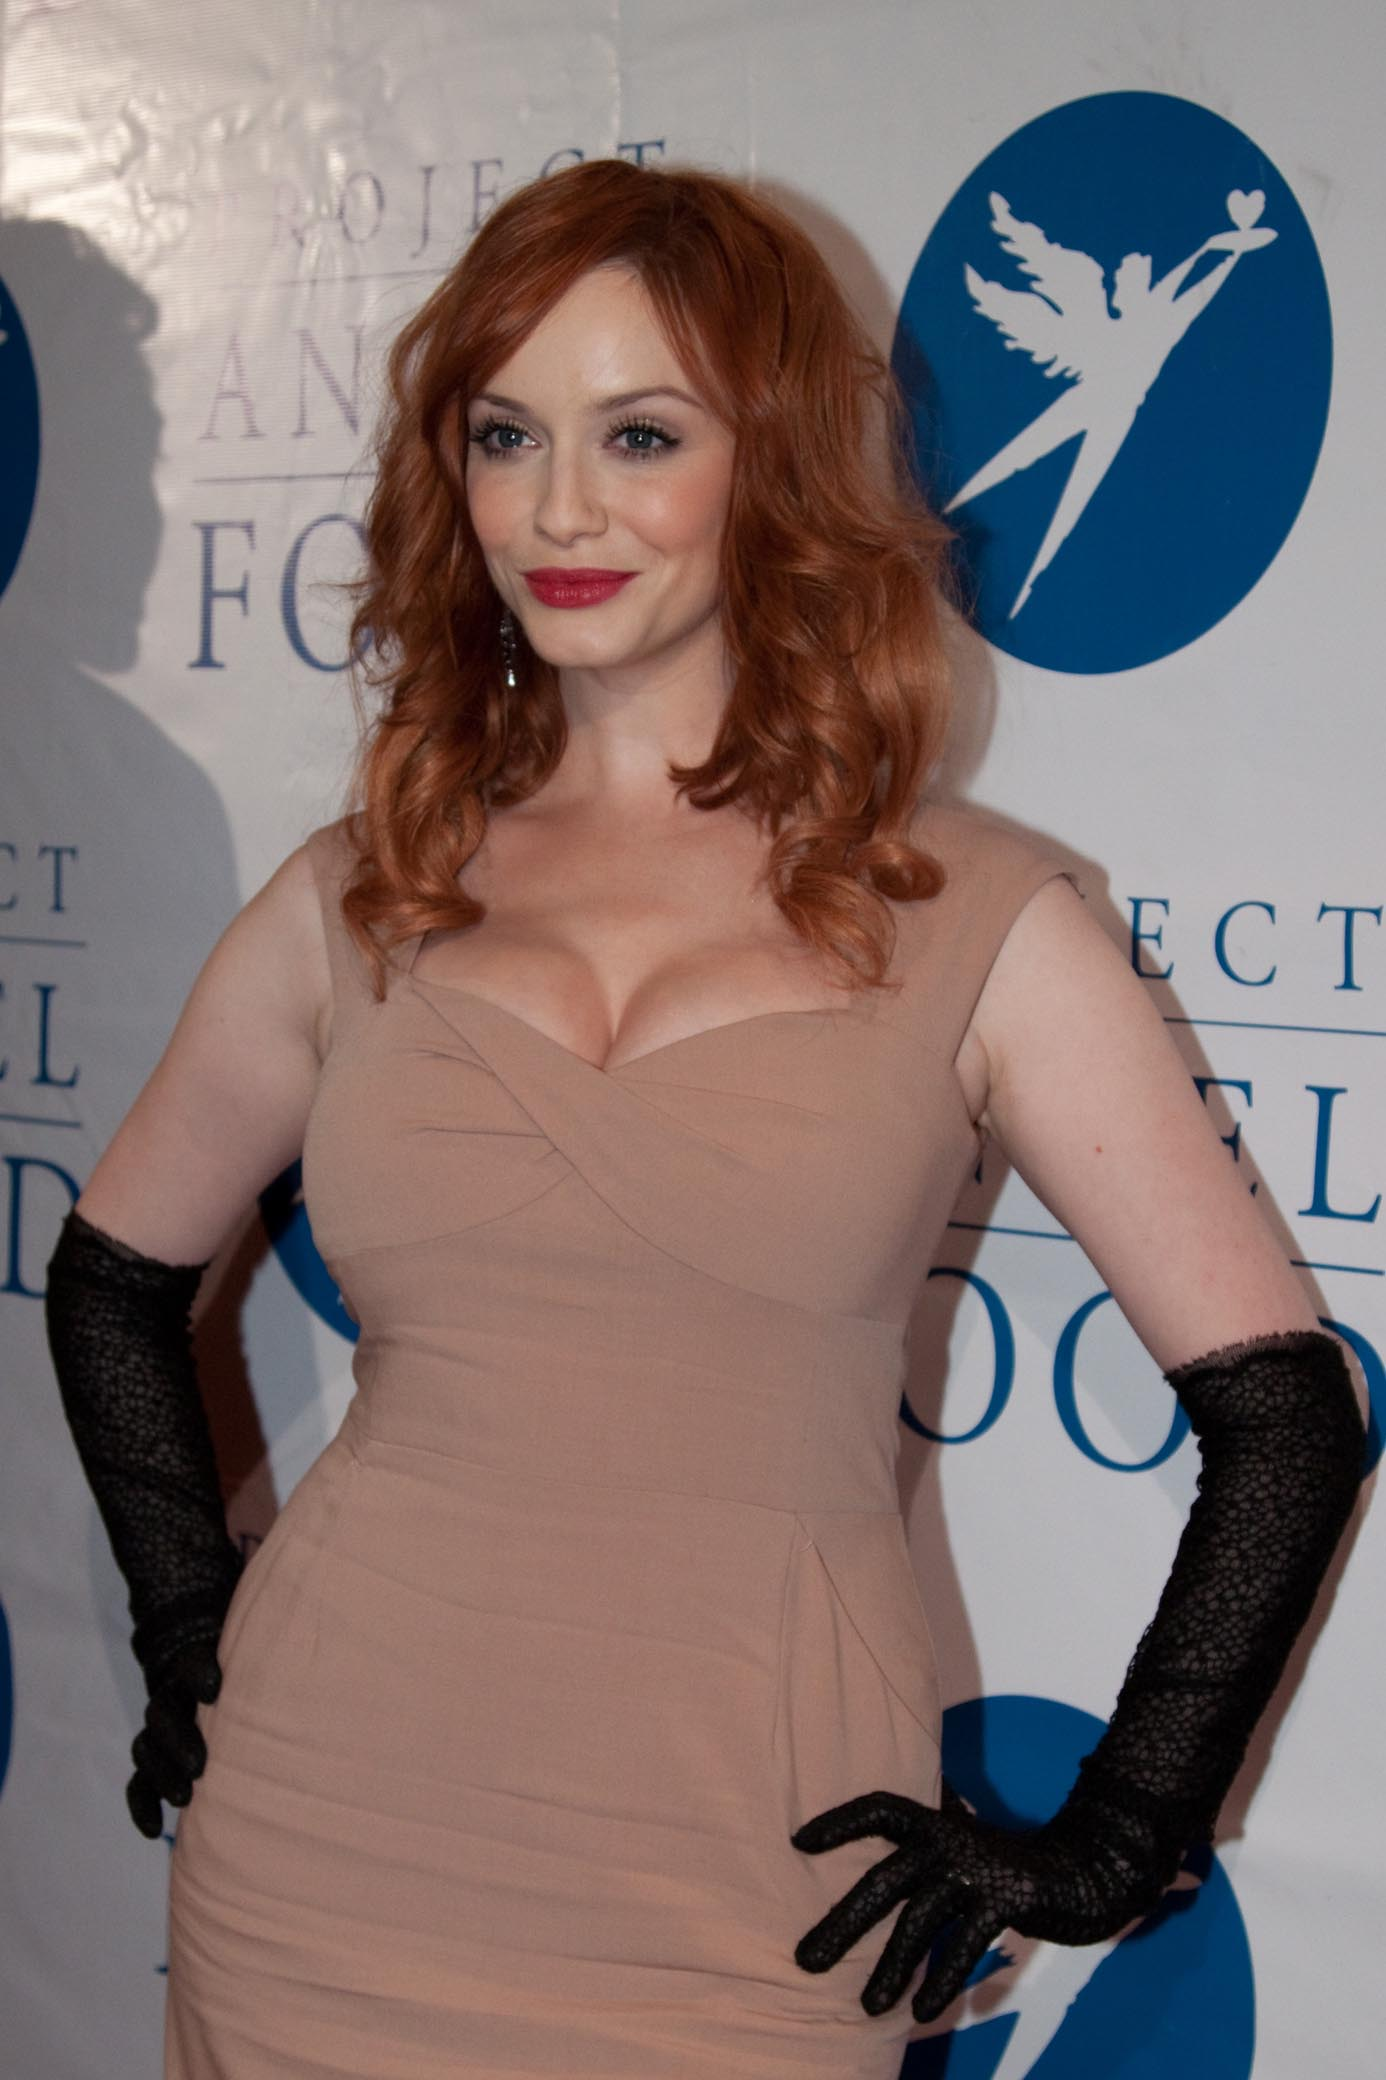 Celebrities arrive at the 17th Annual Divine Design to Benefit Project Angel Food at the Beverly Hilton on December 3, 2009. Honorees included actress Christina Hendricks (Mad Men) and Steven Kolb, Executive Director of CFDA. Pictured: Christina Hendricks Ref: SPL143246 031209 Picture by: Ratianda/London Ent/Splash News Splash News and Pictures Los Angeles:310-821-2666 New York: 212-619-2666 London: 870-934-2666 photodesk@splashnews.com